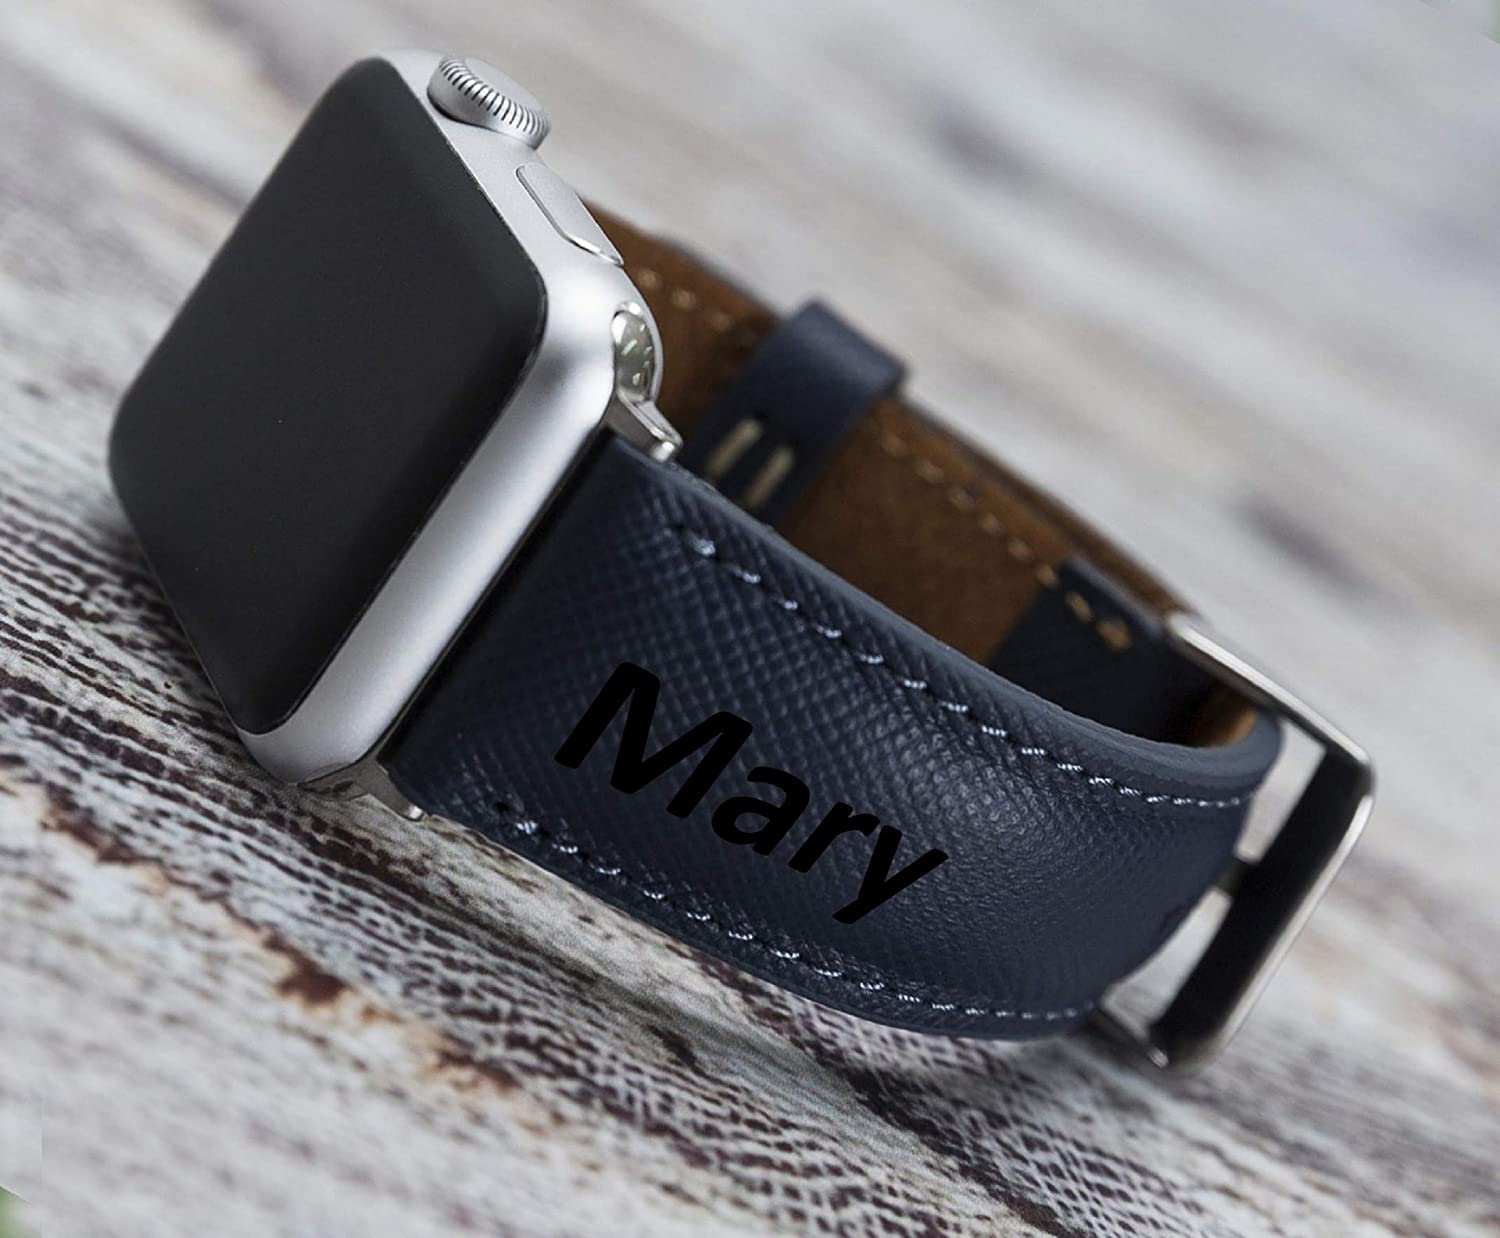 Personalized Apple Watch Band 44mm 42mm 40mm 38mm Bitrthday Gift Genuine Leather High Quality iWatch Strap, Handmade Bull Strap, Made by First Class Cowhide Leather, Series 6-5 - 4-3 - 2-1